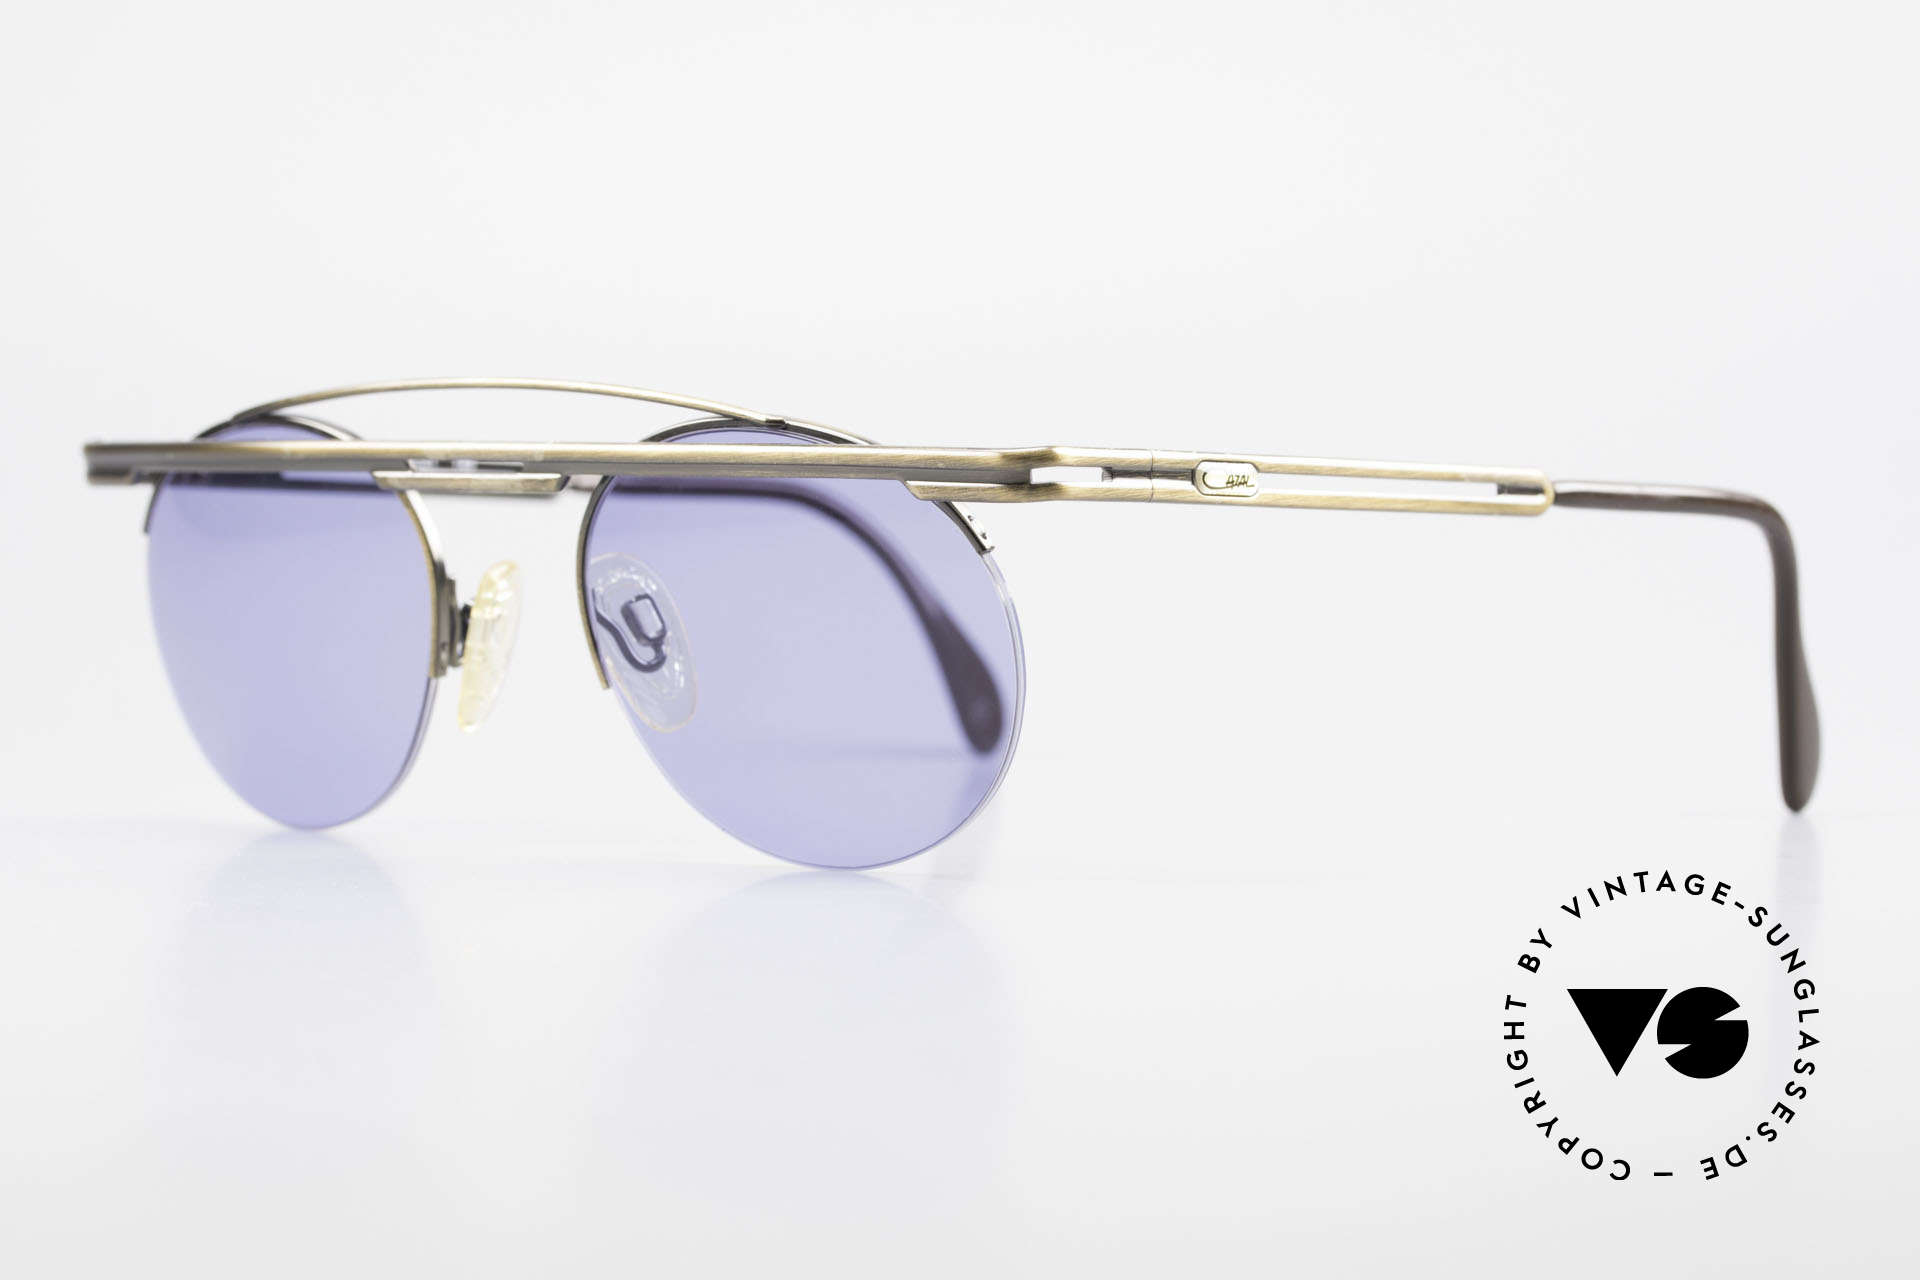 Cazal 748 True Vintage 90's Sunglasses, tangible high-end craftsmanship (frame made in Germany), Made for Men and Women